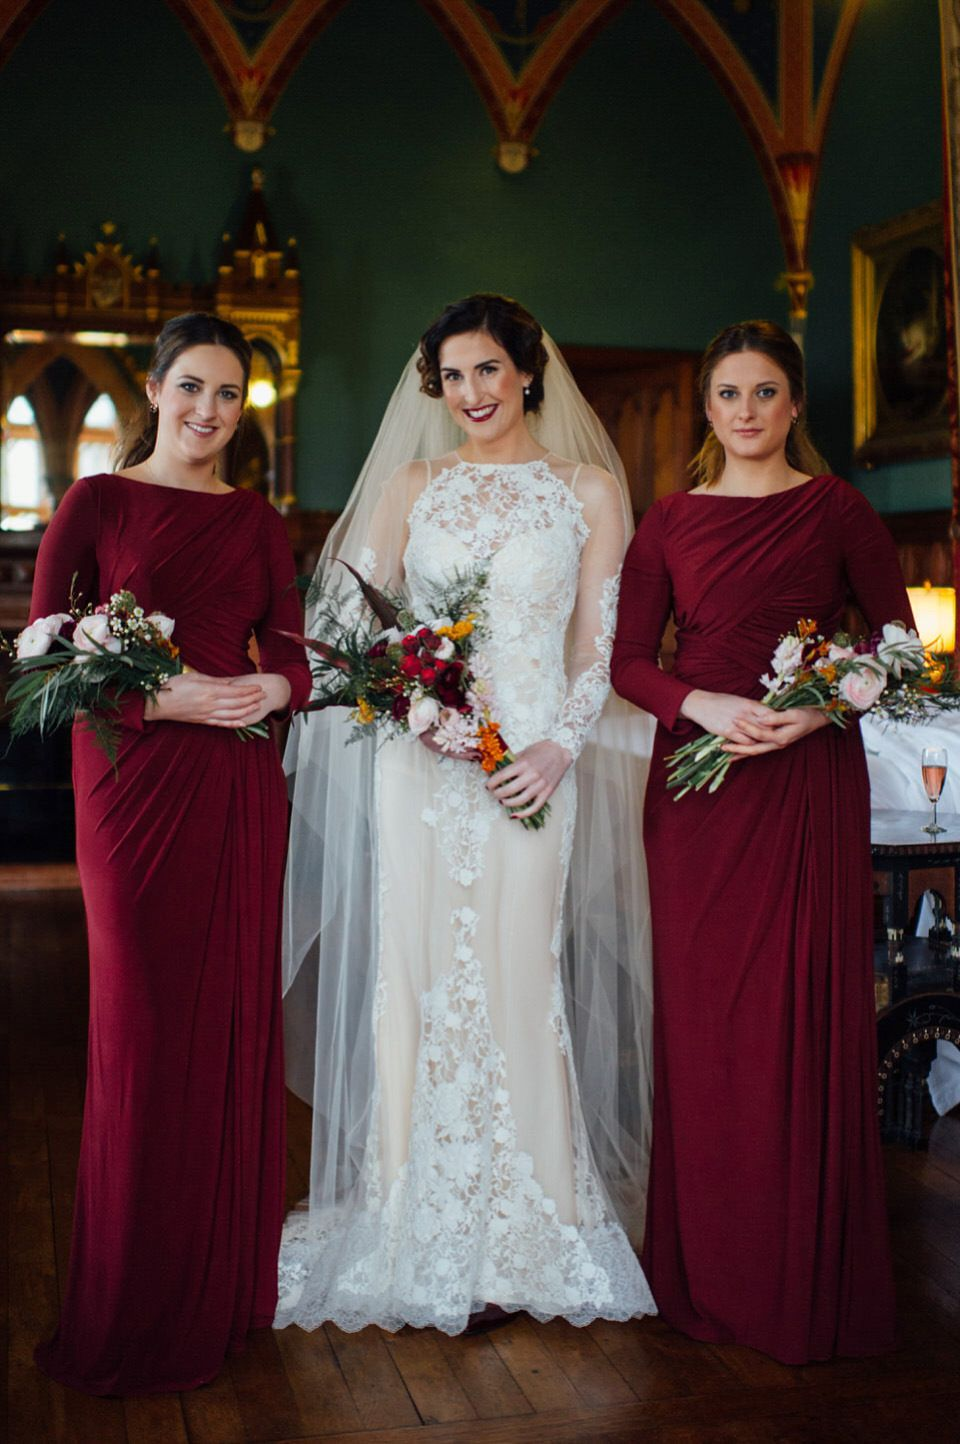 A yolancris gown and bridesmaids in burgundy for a humanist winter a yolancris gown and bridesmaids in burgundy for a humanist winter wedding ombrellifo Images